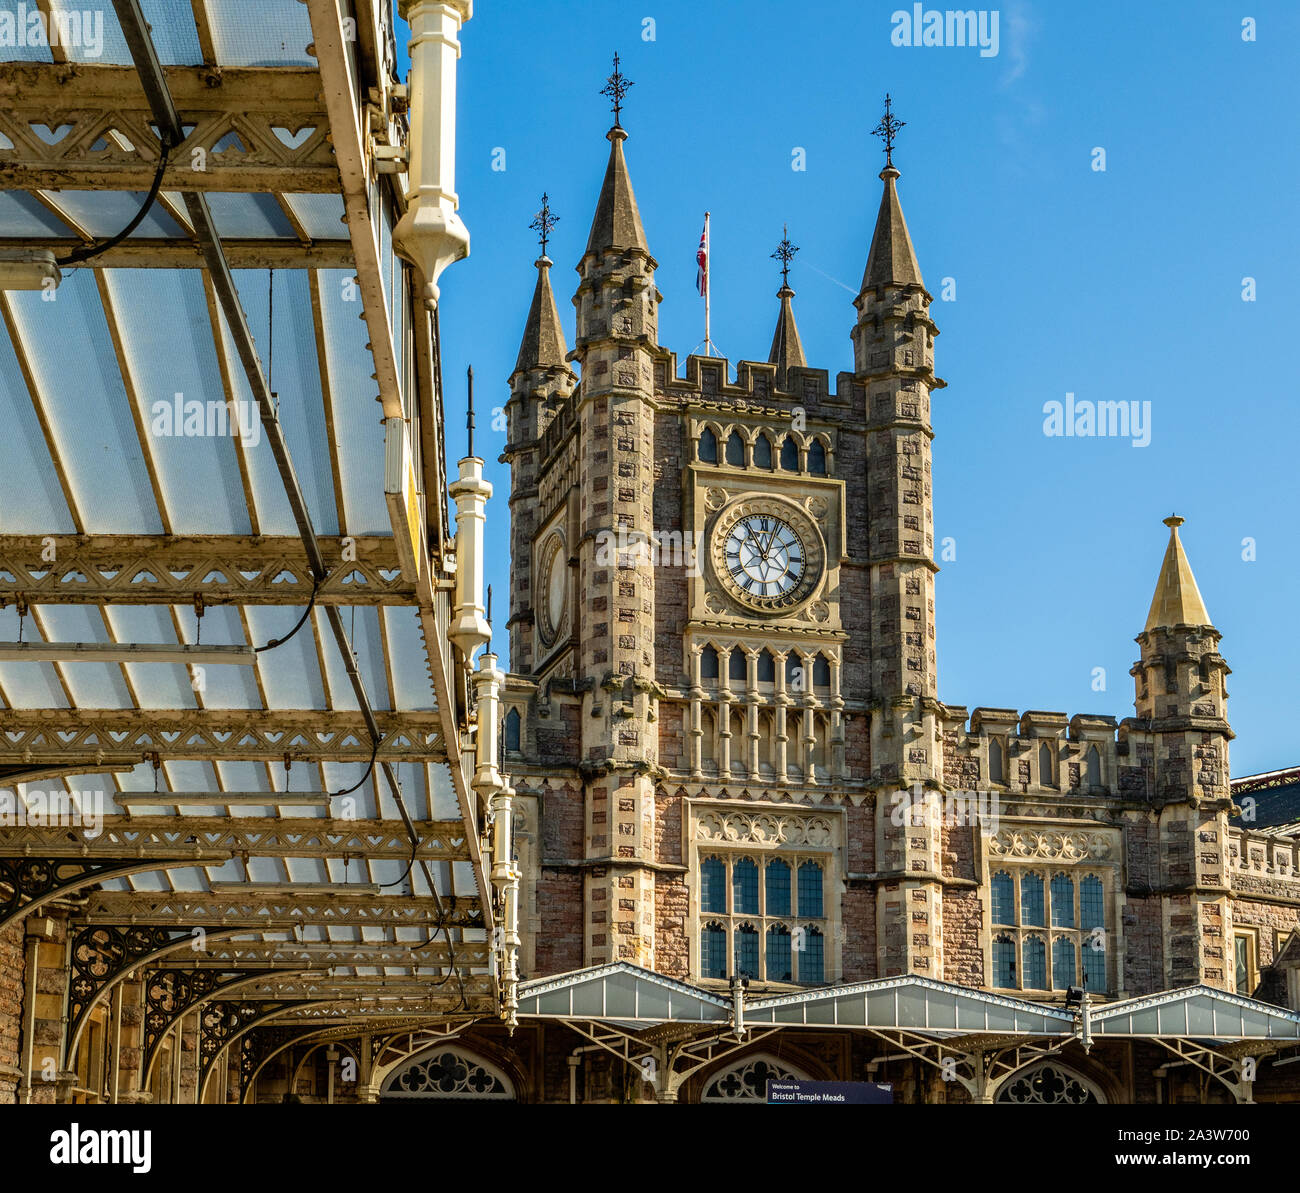 Main entrance to Temple Meads station Bristol UK with its gothic facade and clock tower Stock Photo